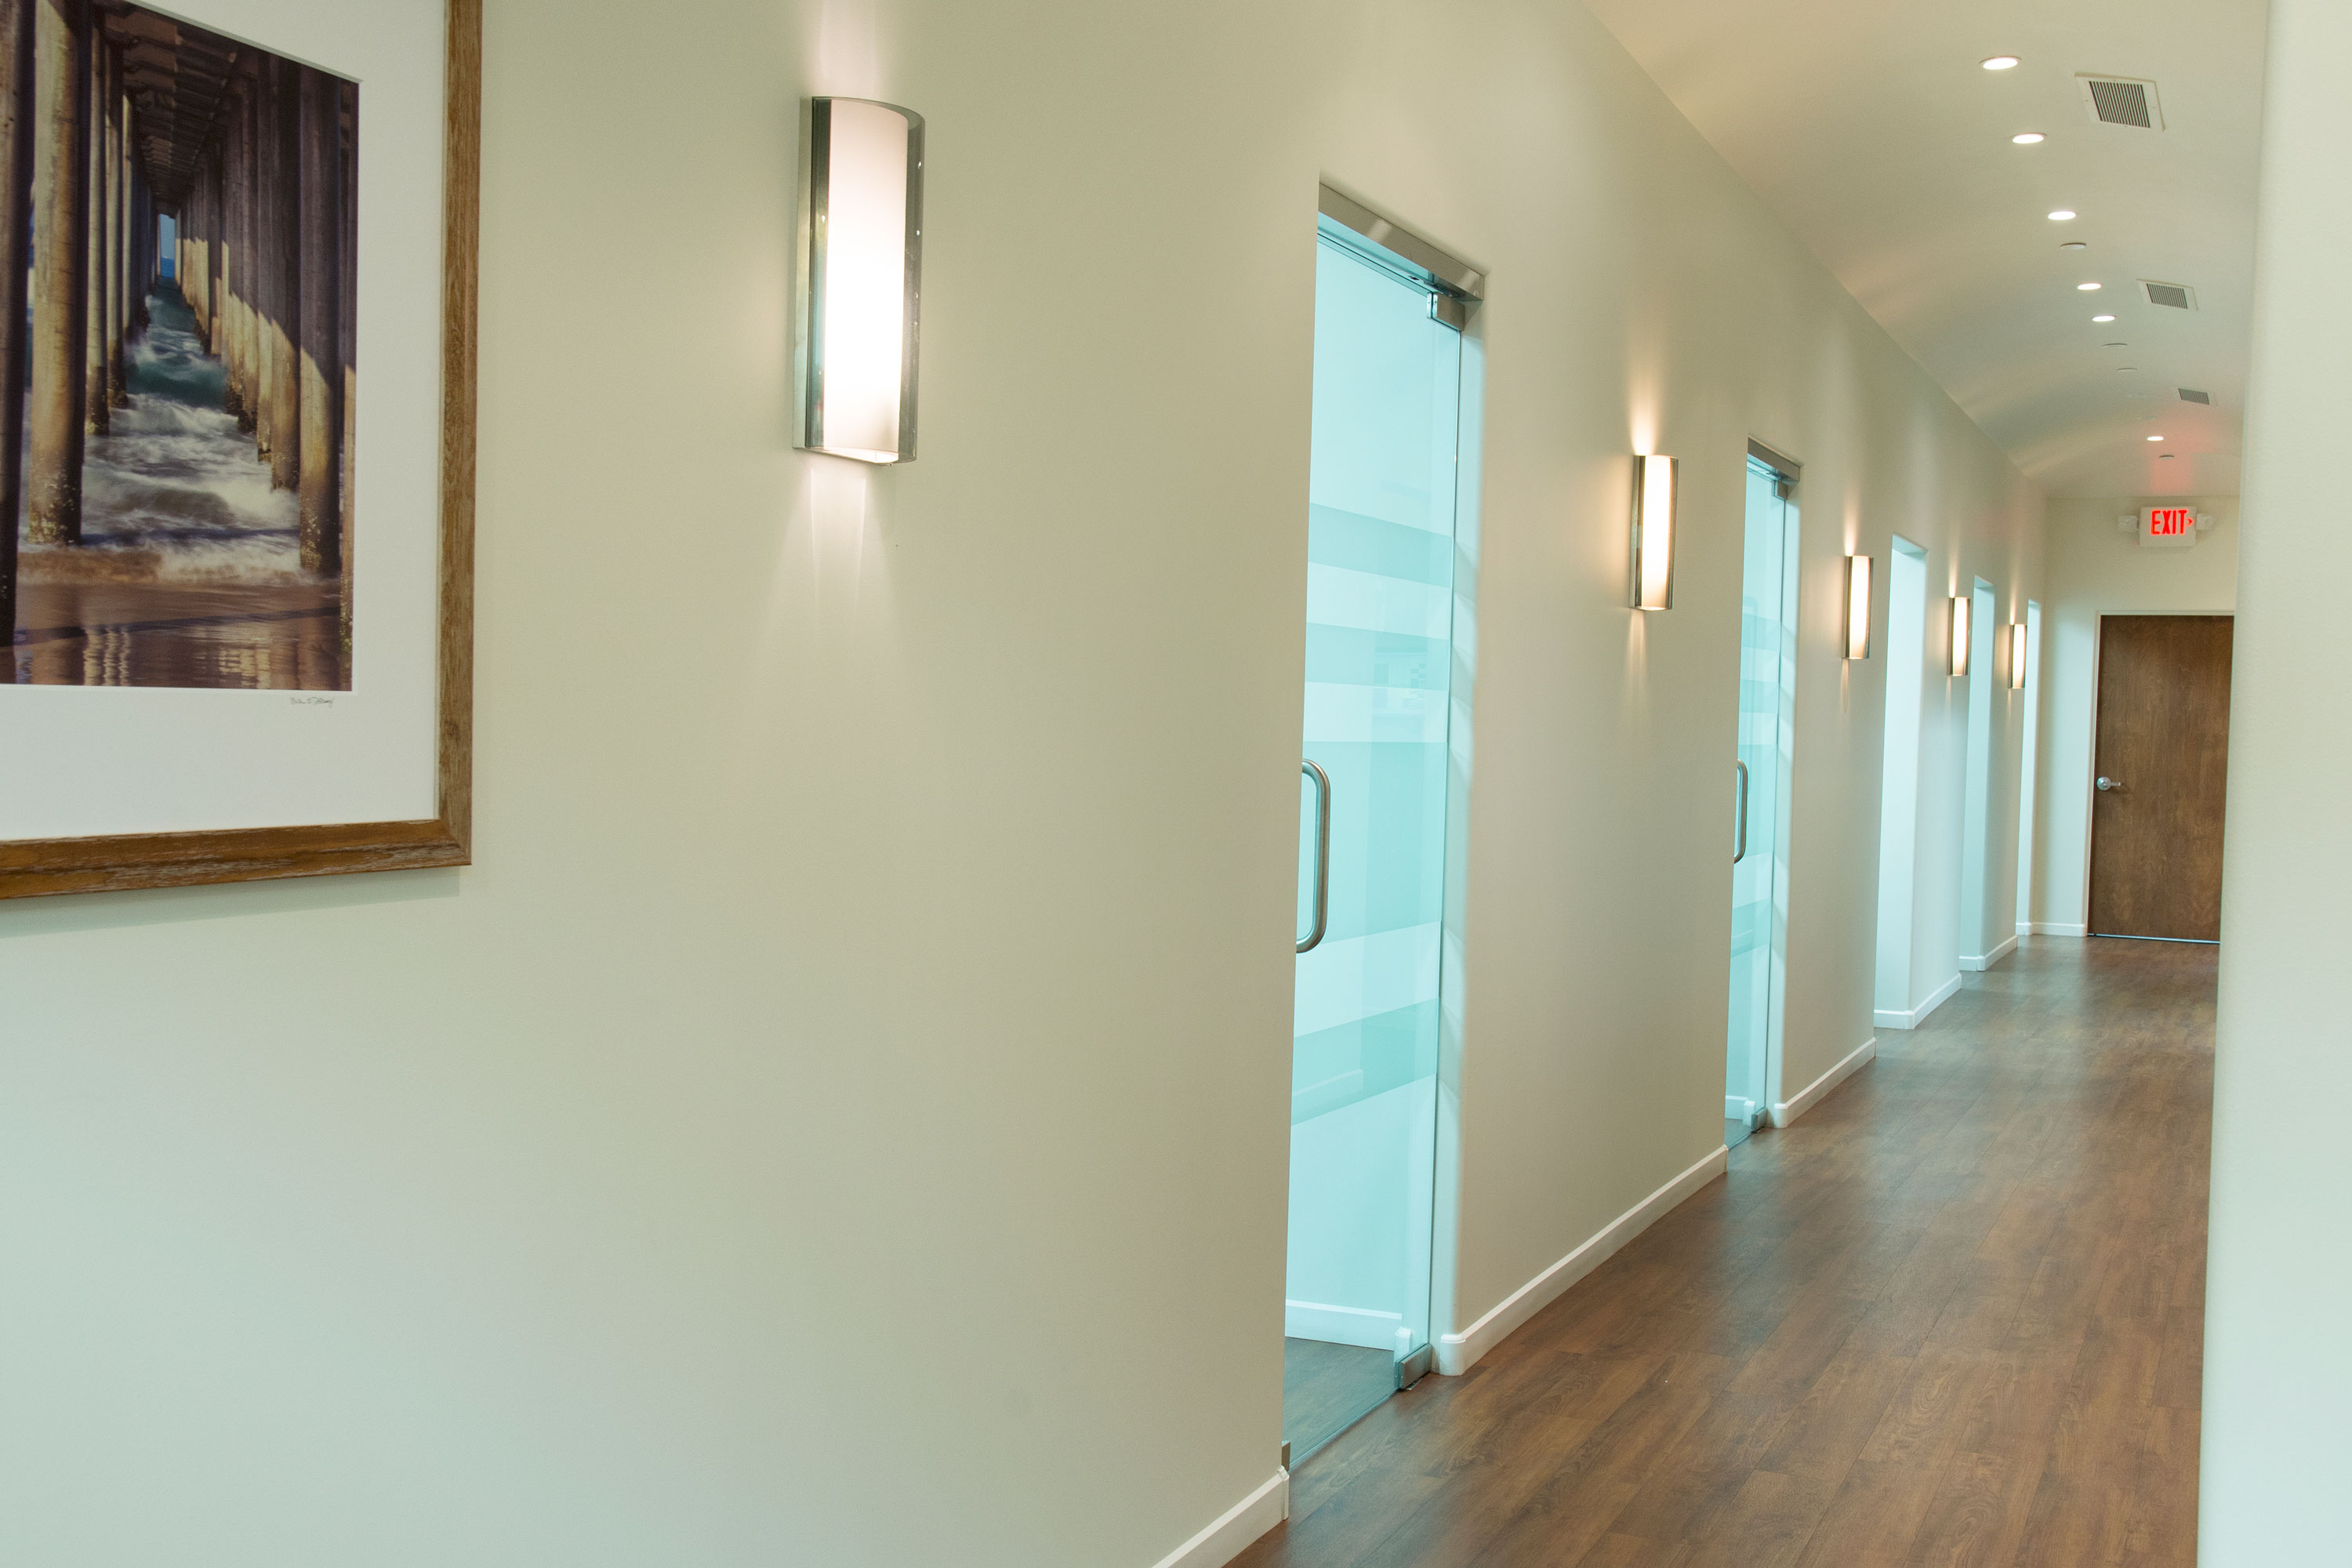 Advanced Dental Implants & Periodontology Scottsdale Arizona Hallway